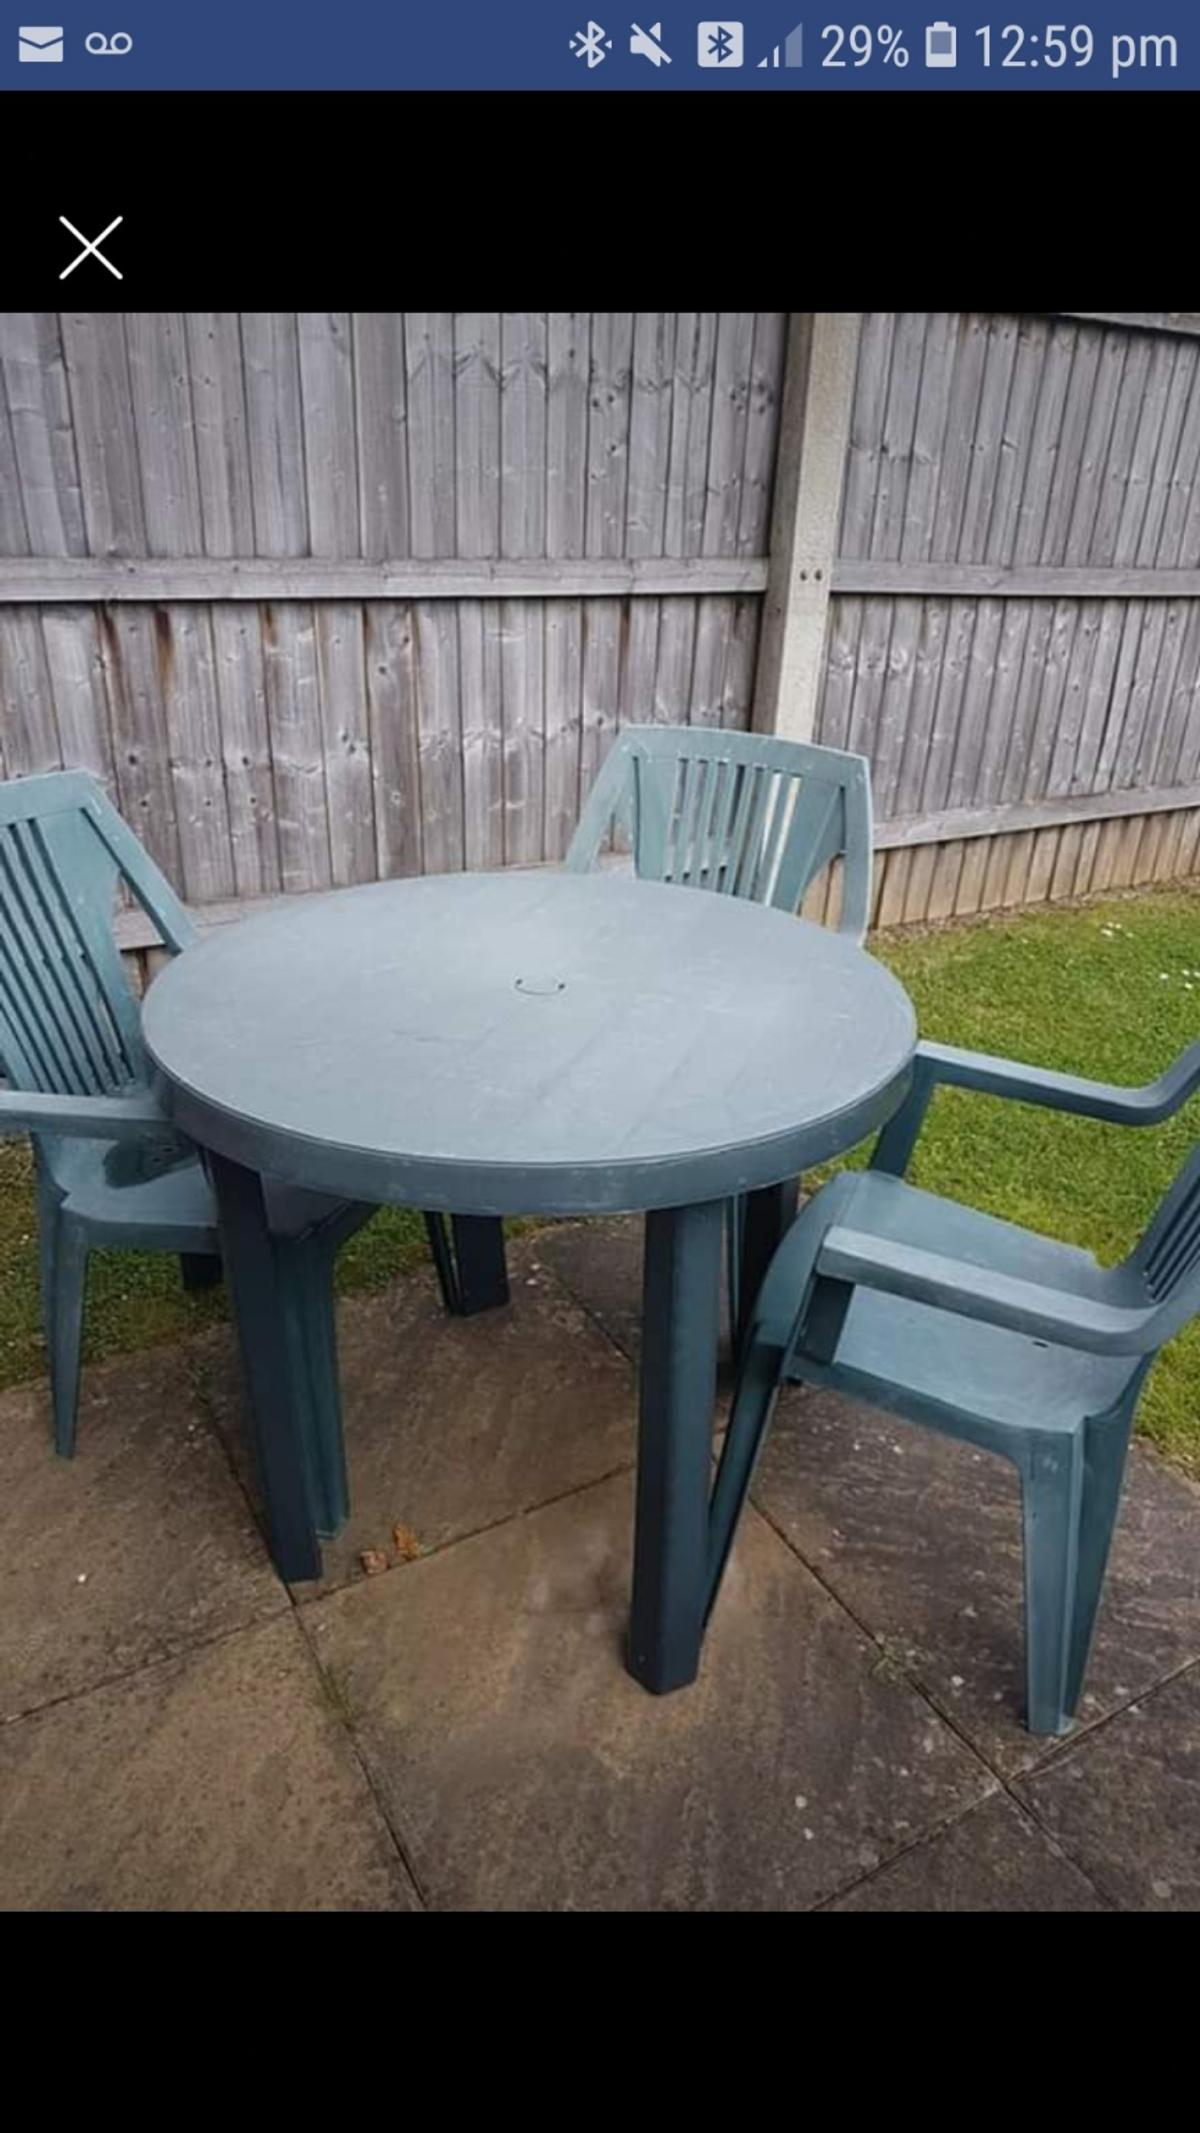 Plastic Green Garden Table Chairs